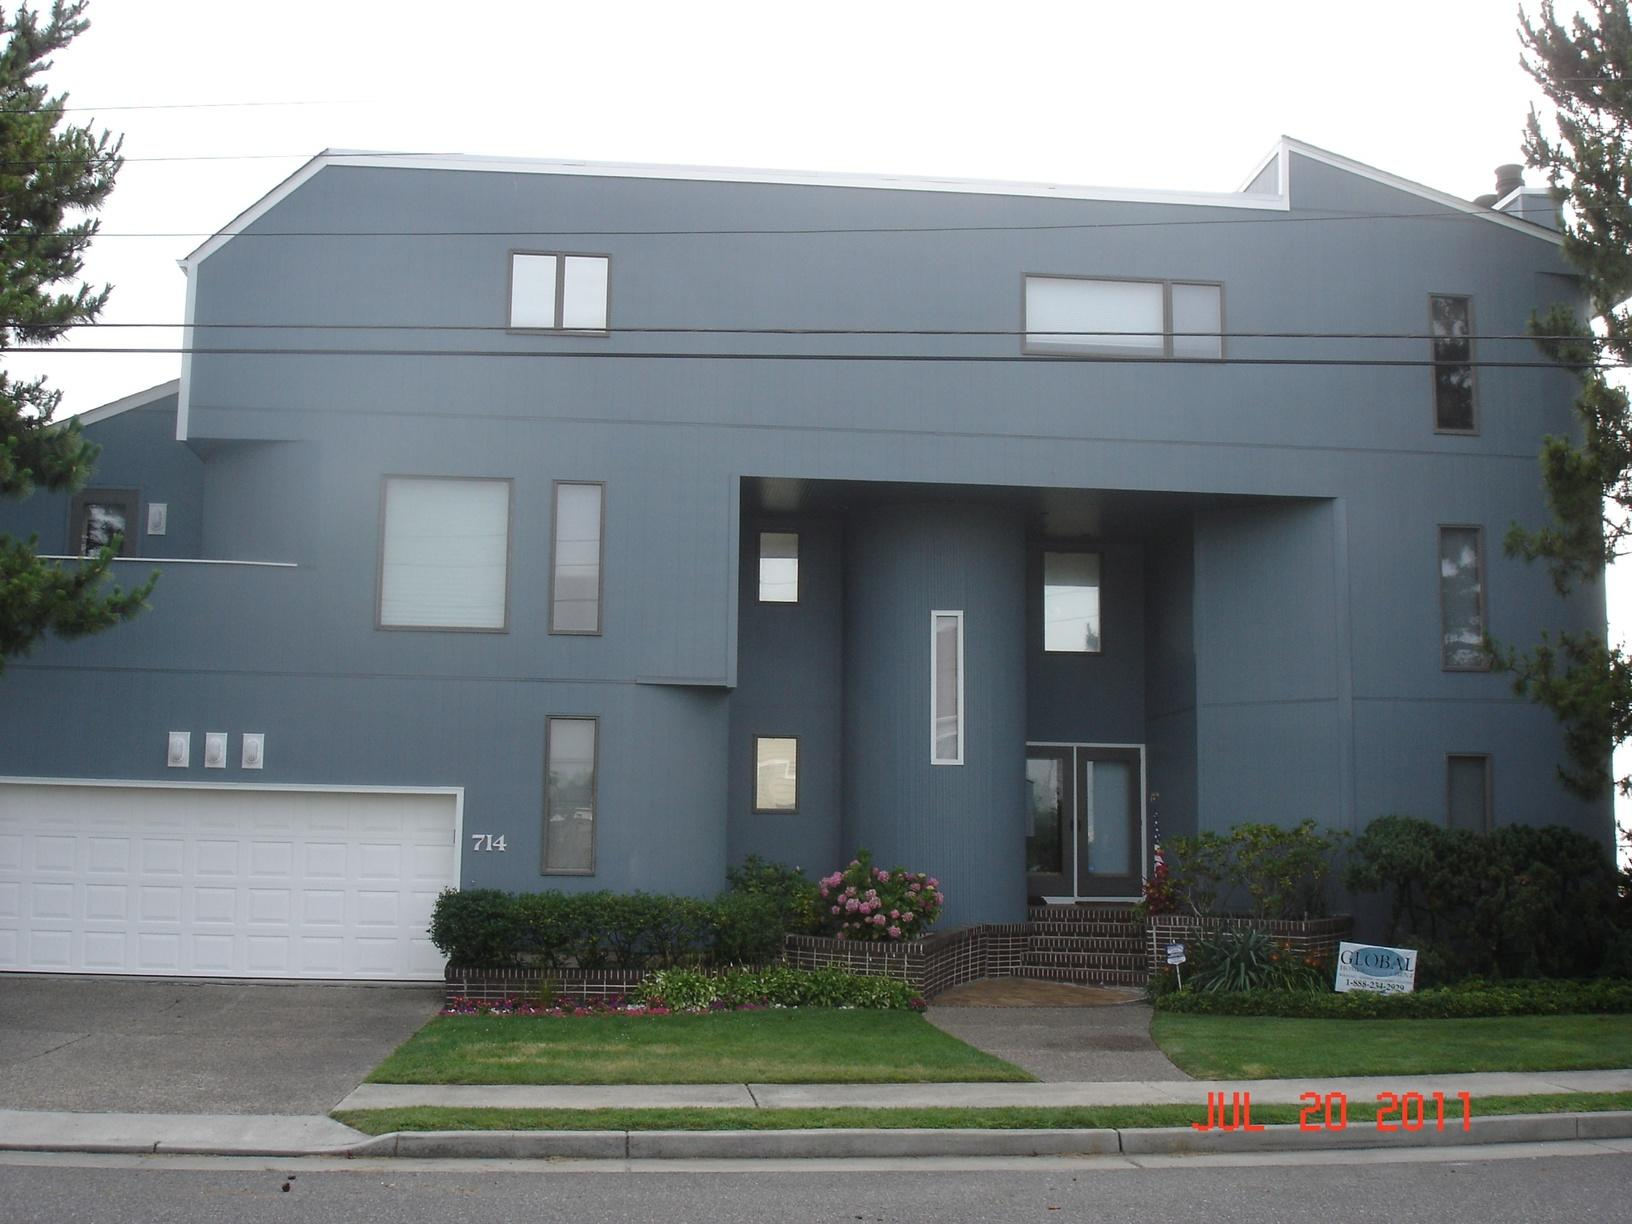 Vertical Siding Installation on Contemporary Home in Ventor, PA